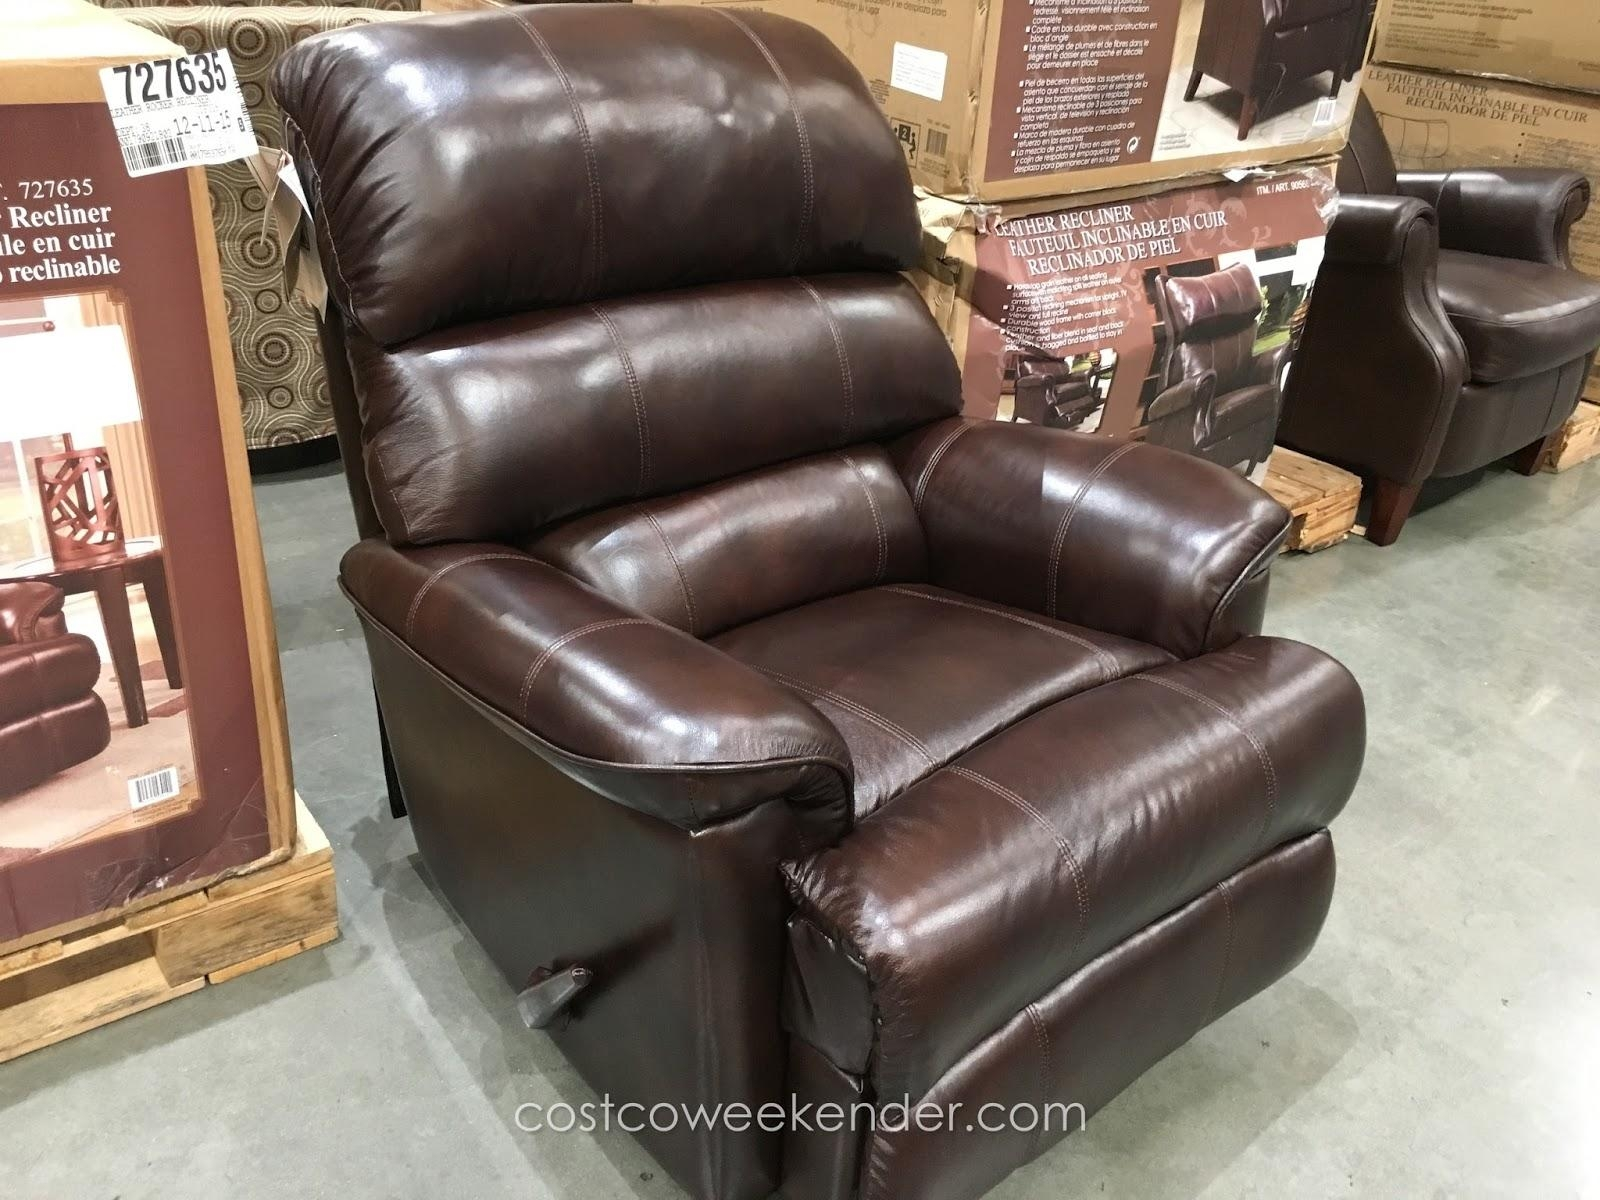 Sofas Center : Stunning Costco Recliner Sofa Images Concept Inside Berkline Leather Sofas (View 19 of 20)